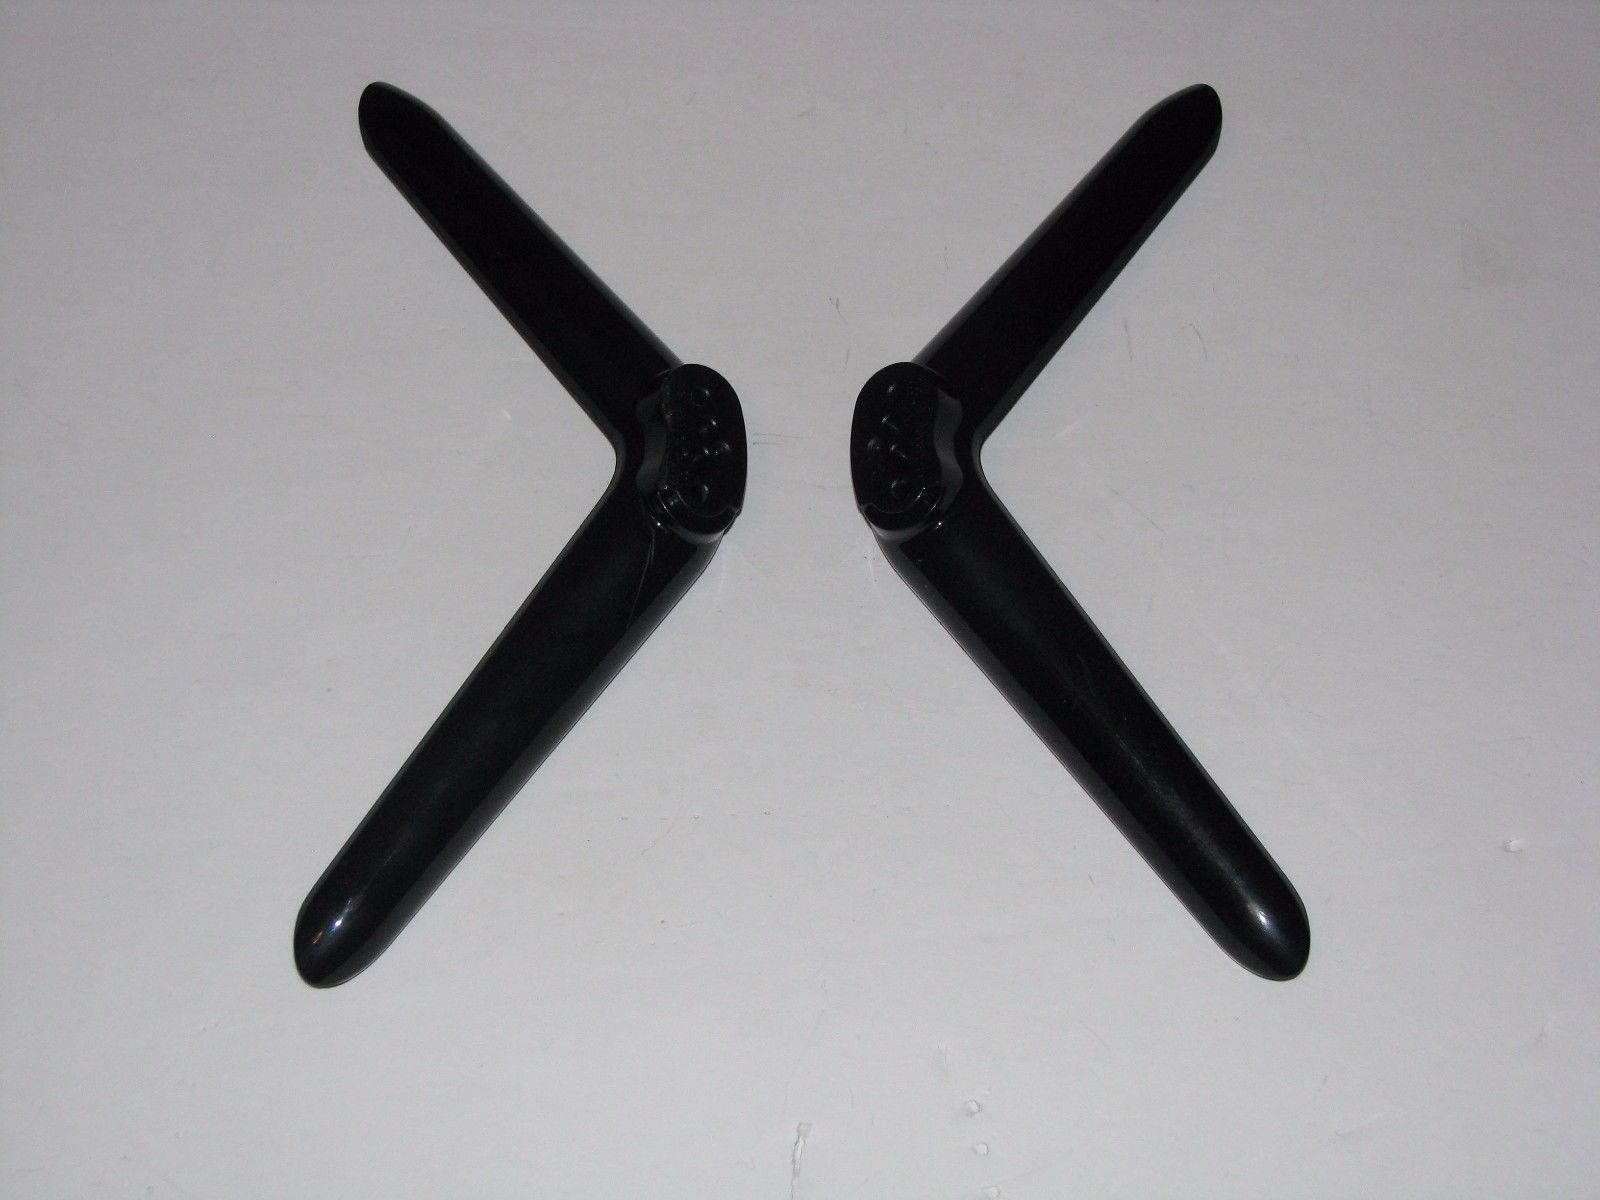 TCL 50FS3800 48FS3750 68-739370 68-739380 TV STAND LEGS With SCREWS